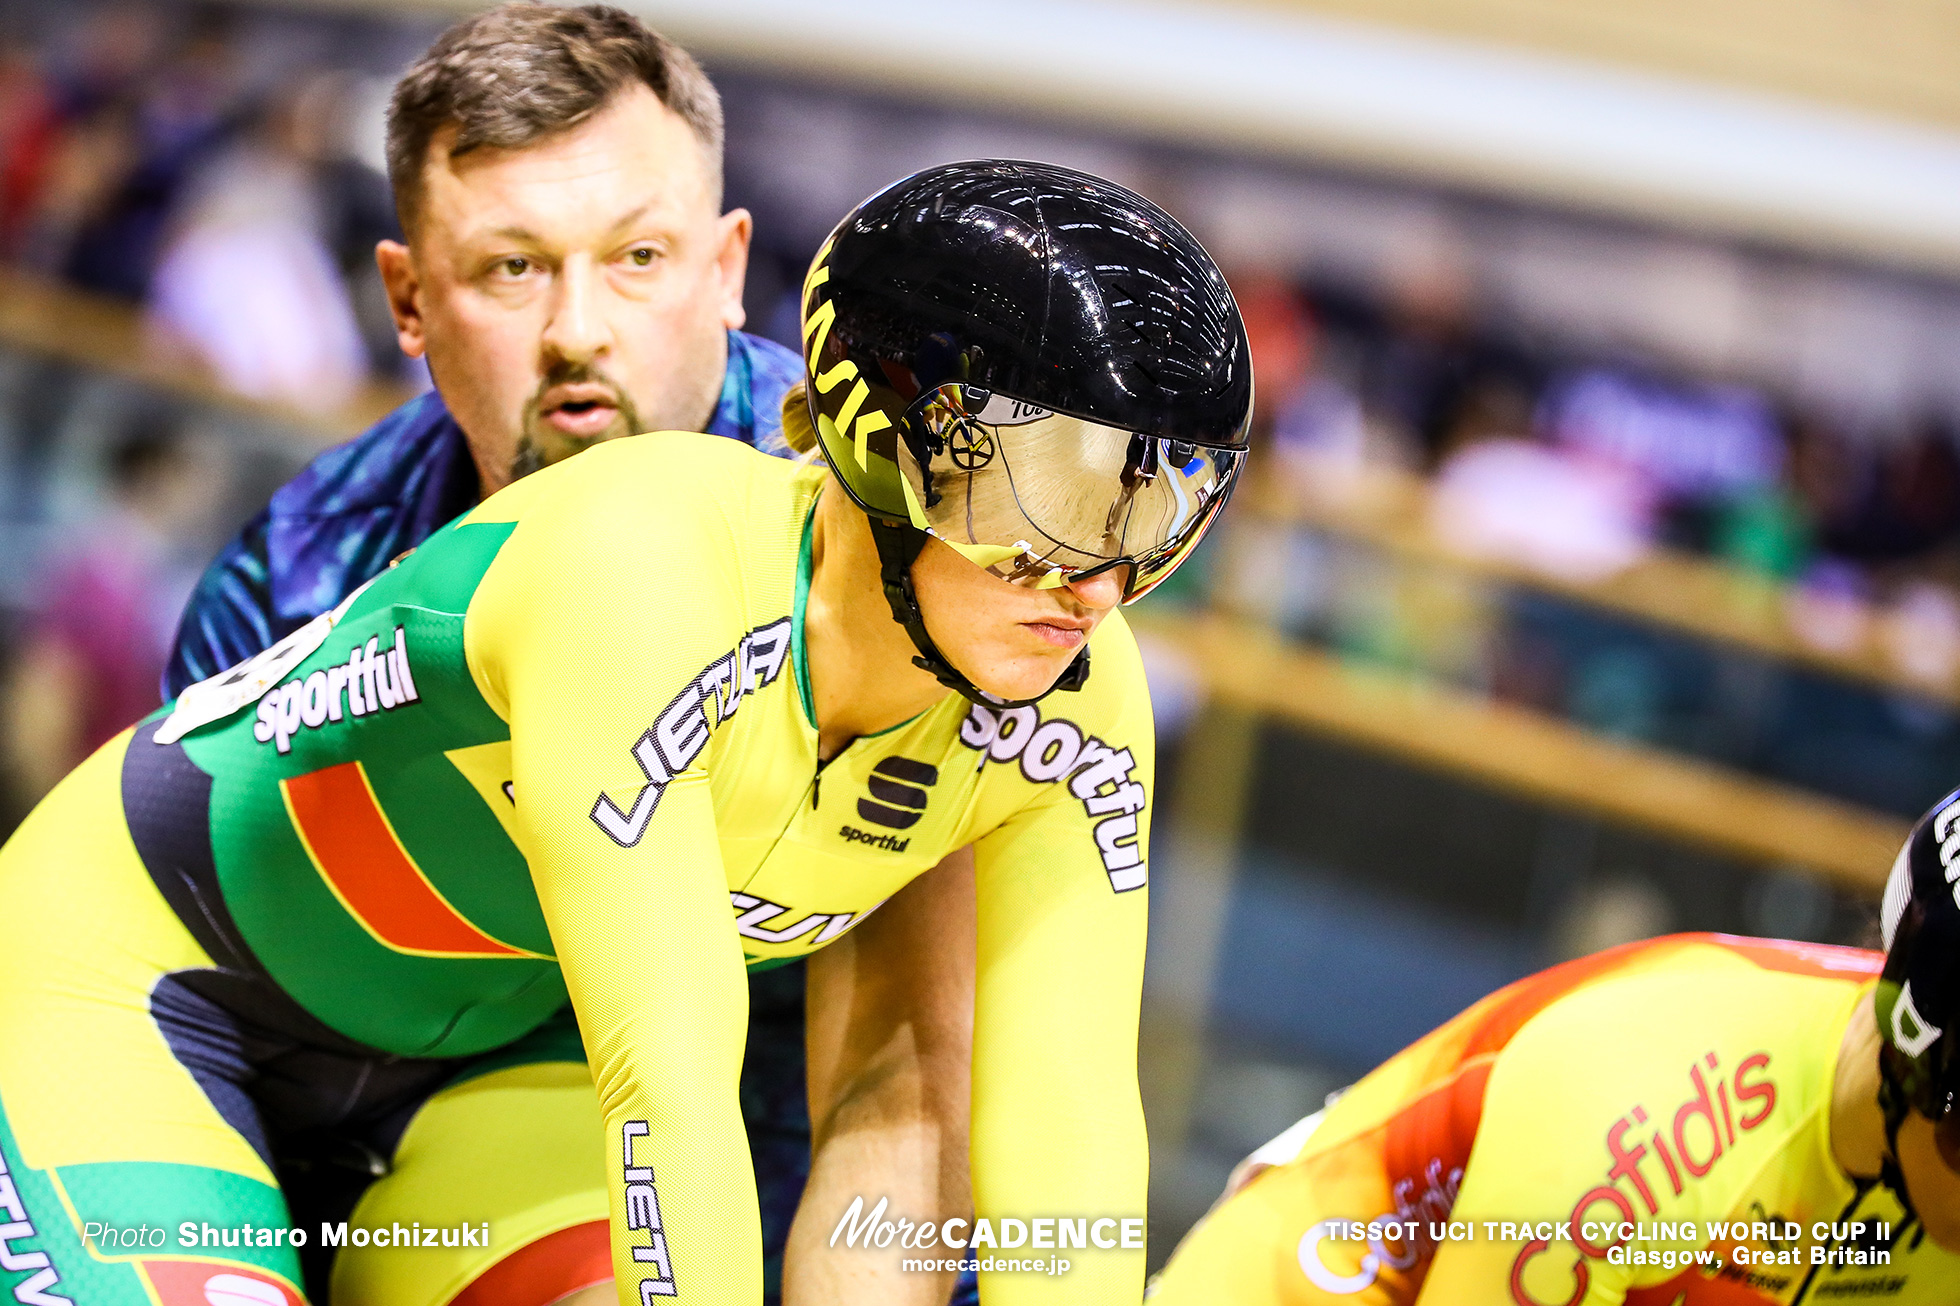 1st Round / Women's Keirin / TISSOT UCI TRACK CYCLING WORLD CUP II, Glasgow, Great Britain, Simona KRUPECKAITE シモーナ・クルペツカイテ